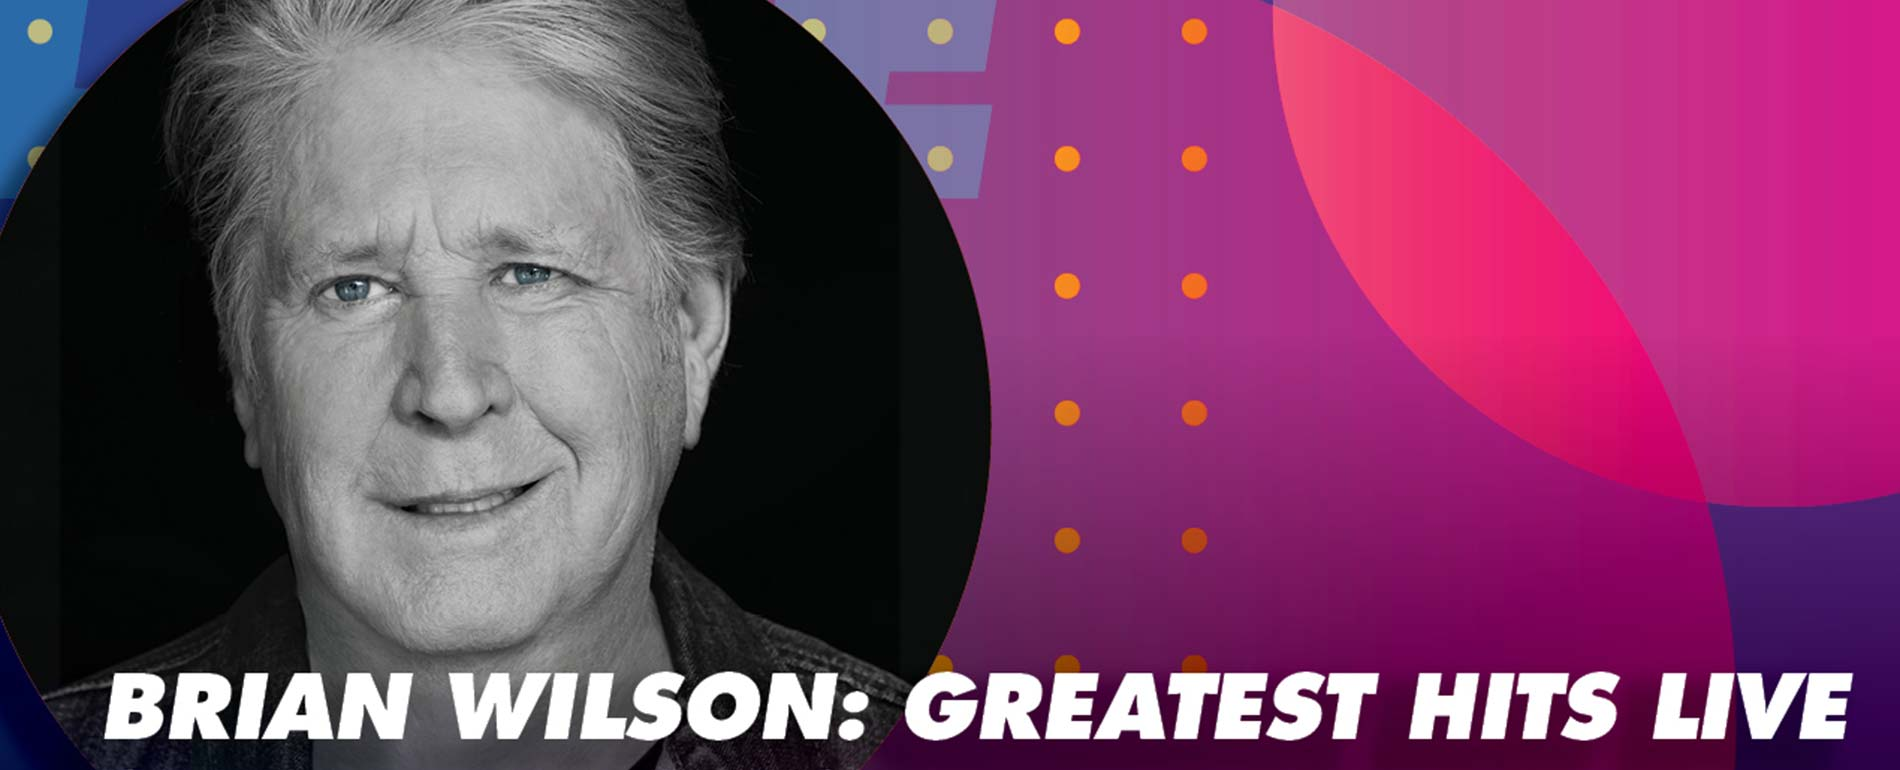 Brian Wilson: Greatest Hits Live - Poconos Concerts